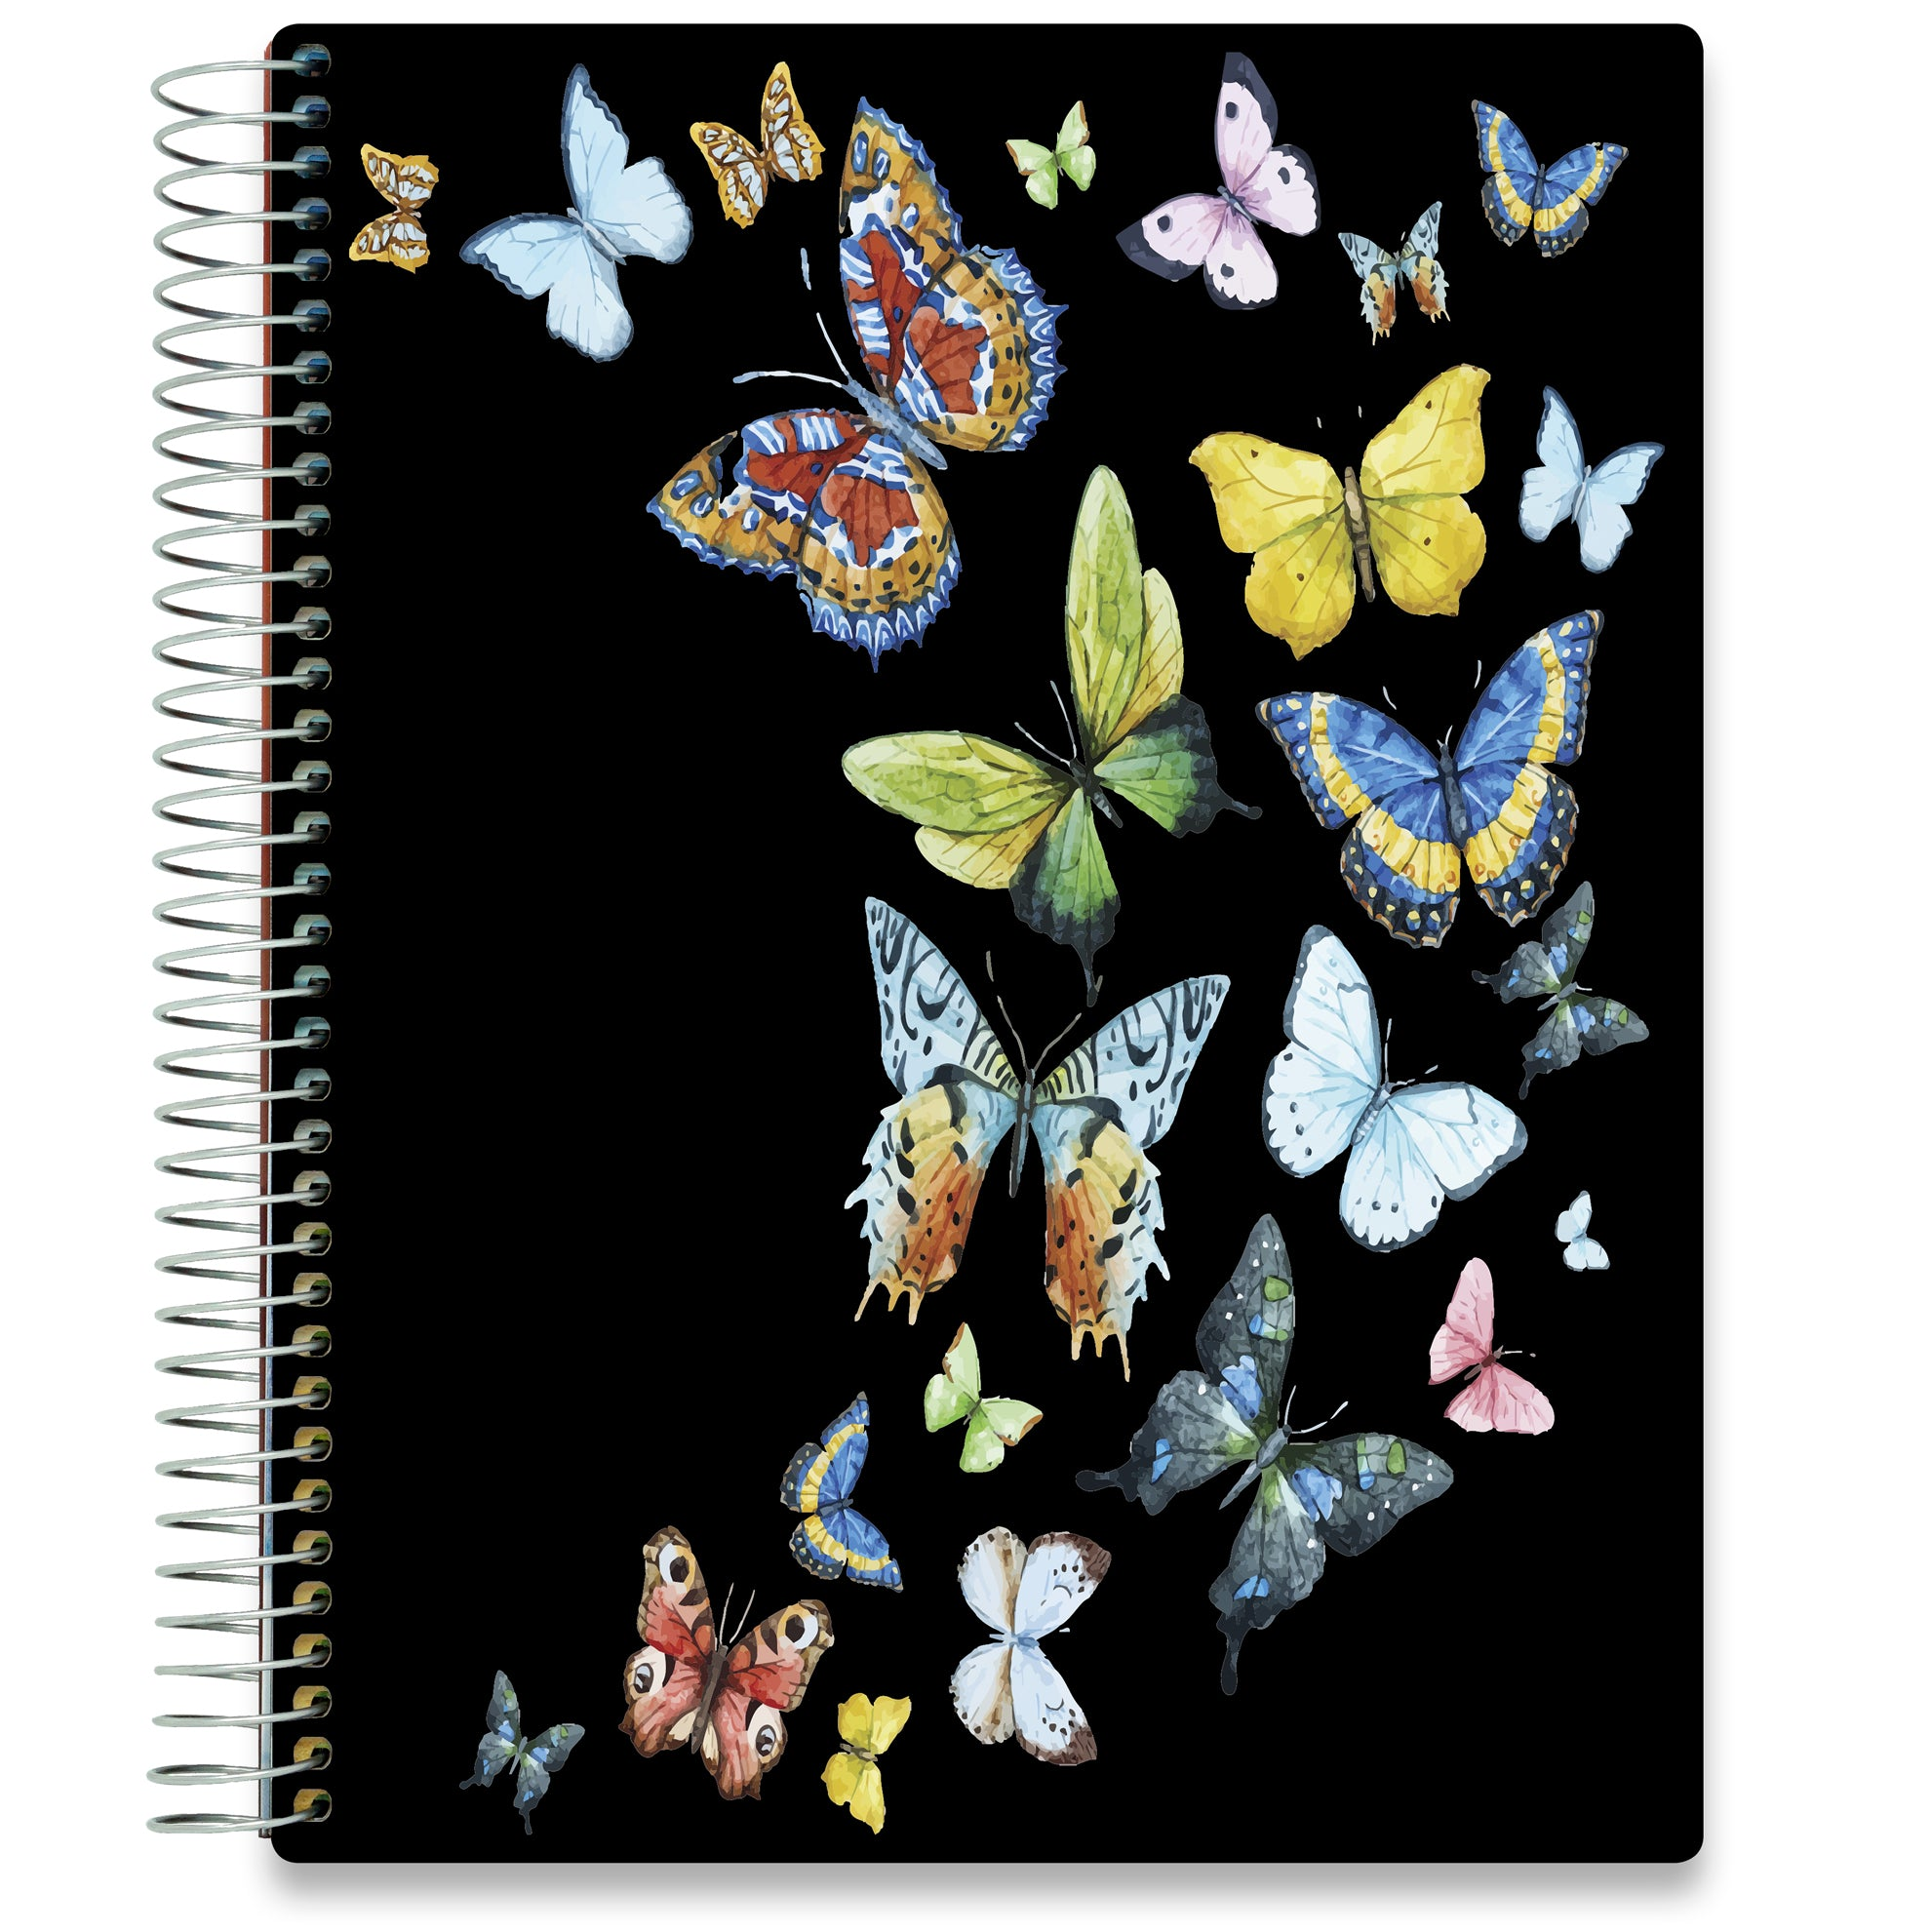 NEW: April 2020-2021 Planner - 8.5x11 - Butterflies-Office Product-Tools4Wisdom